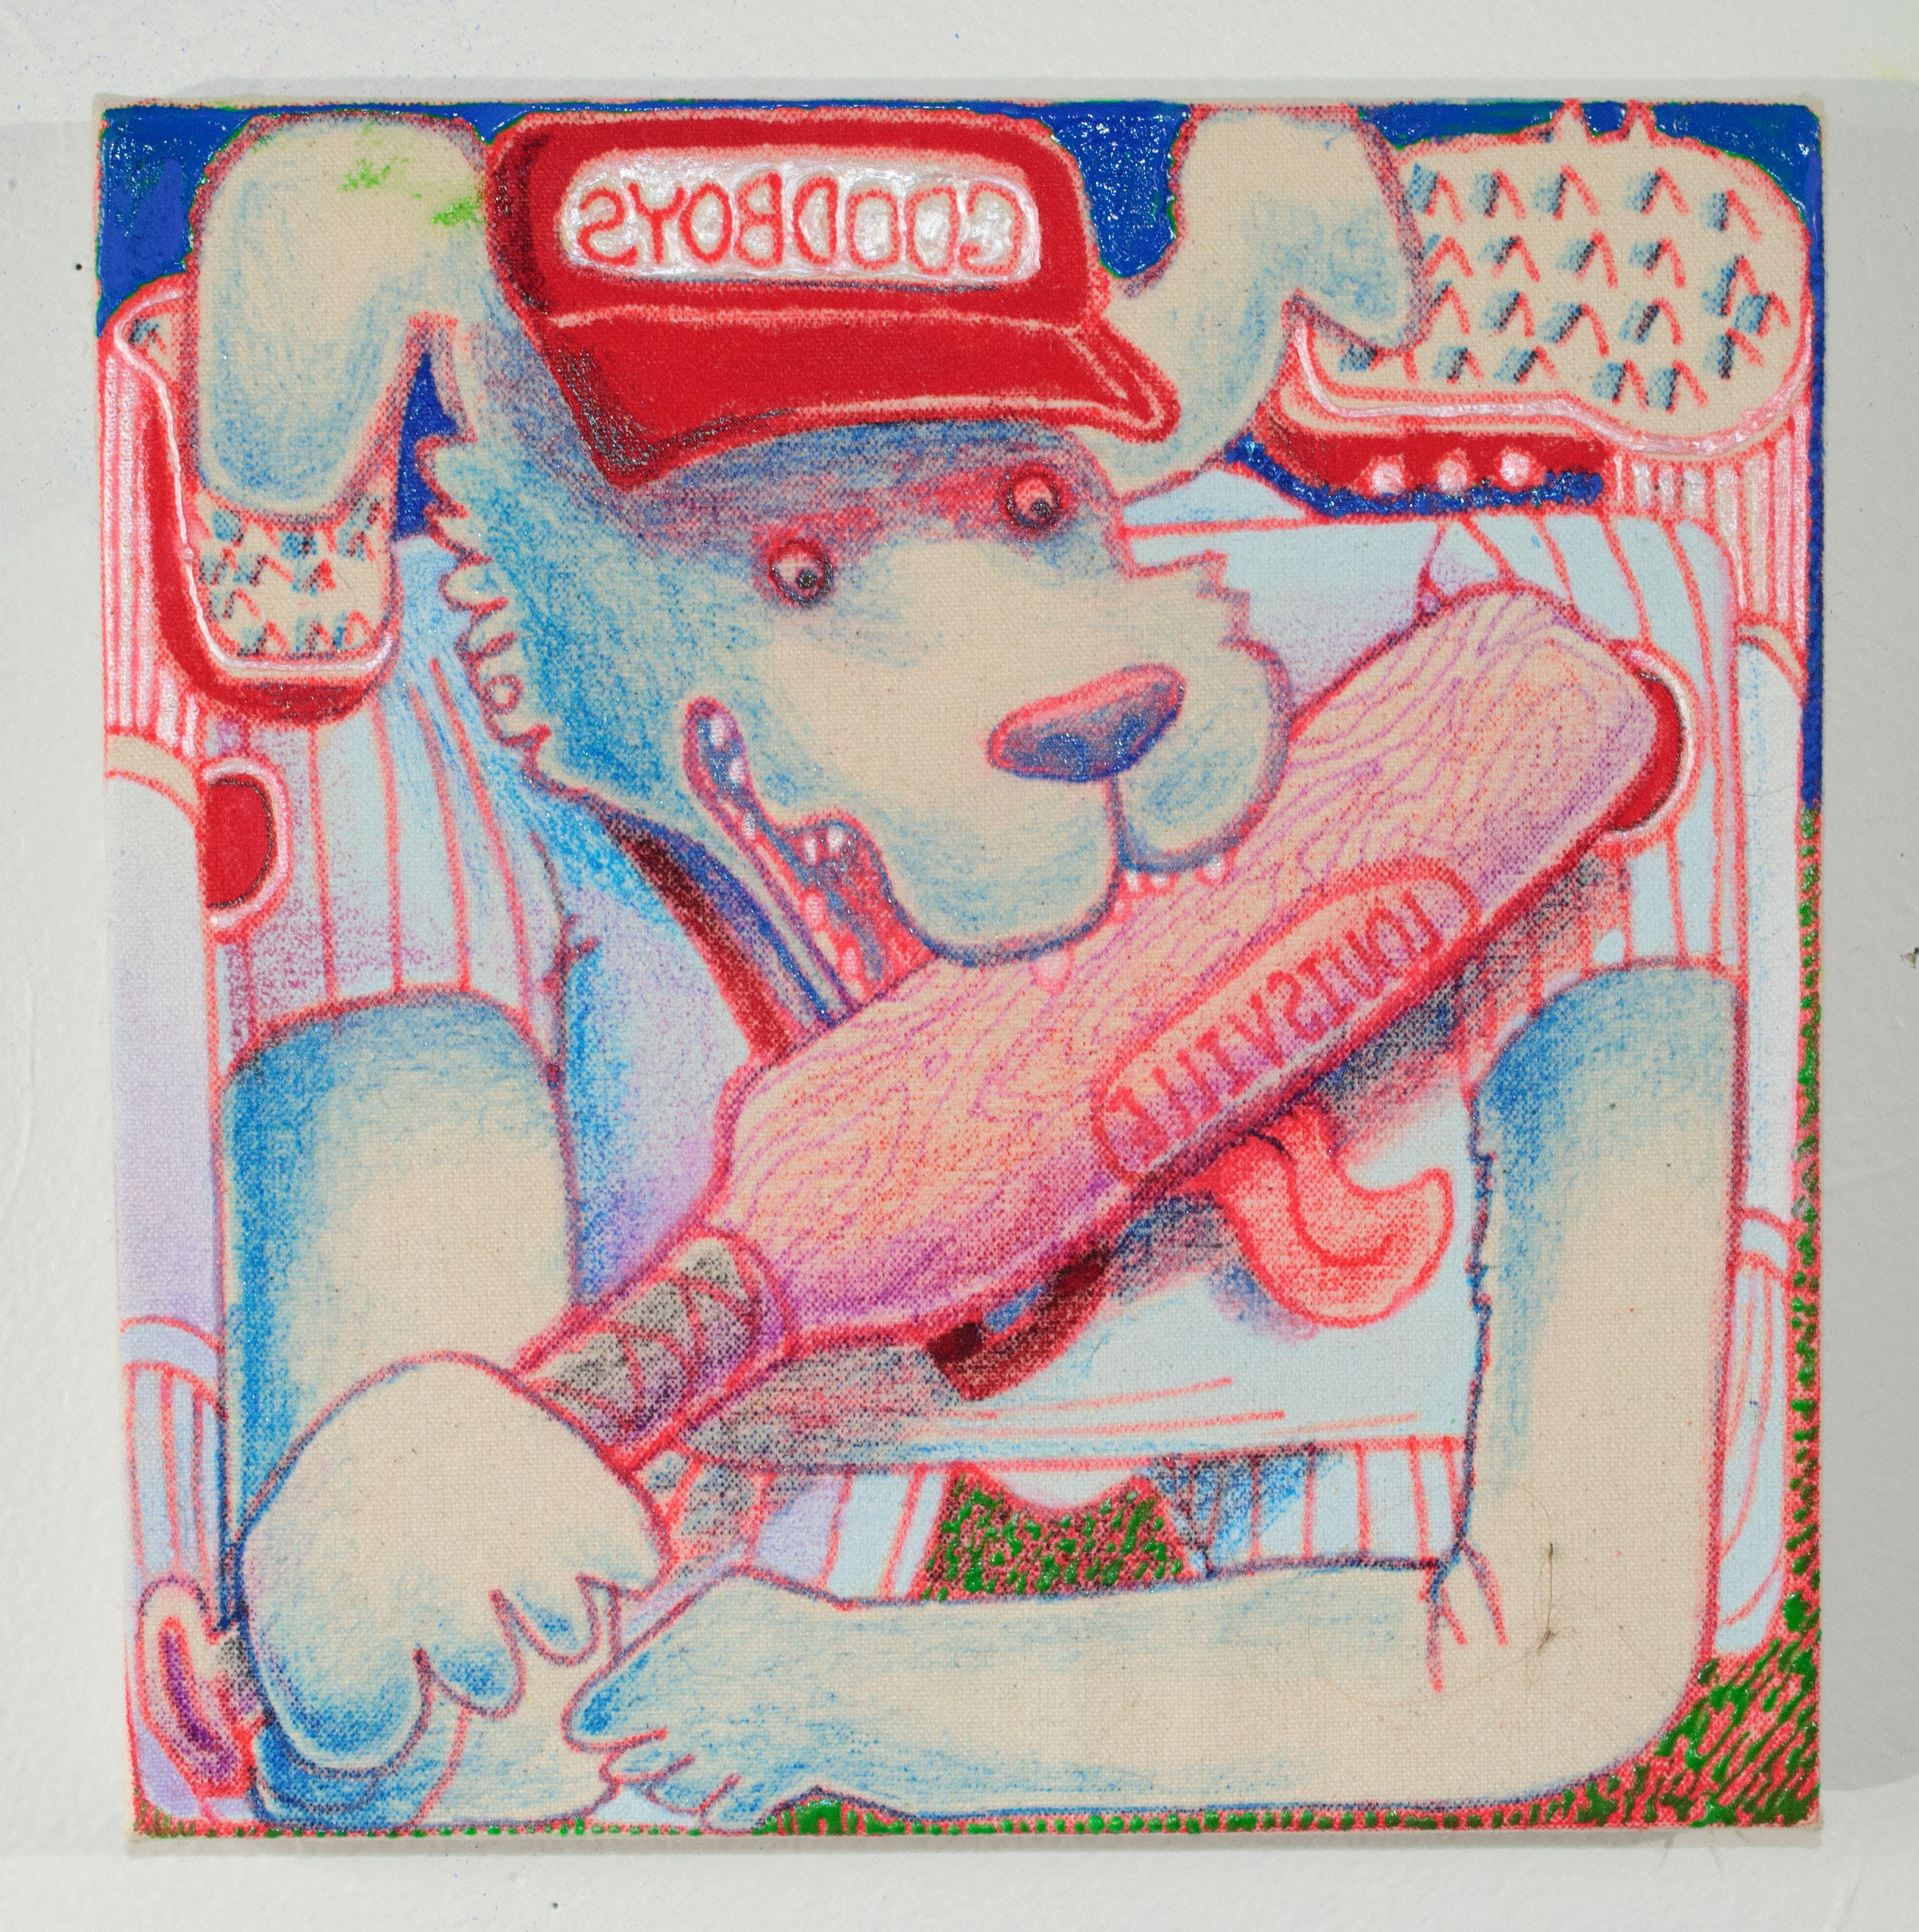 "Mark Zubrovich, ""Stick Lick"", Acrylic fabric paint and gel pen on canvas, 10 x 10 inches, 2018"